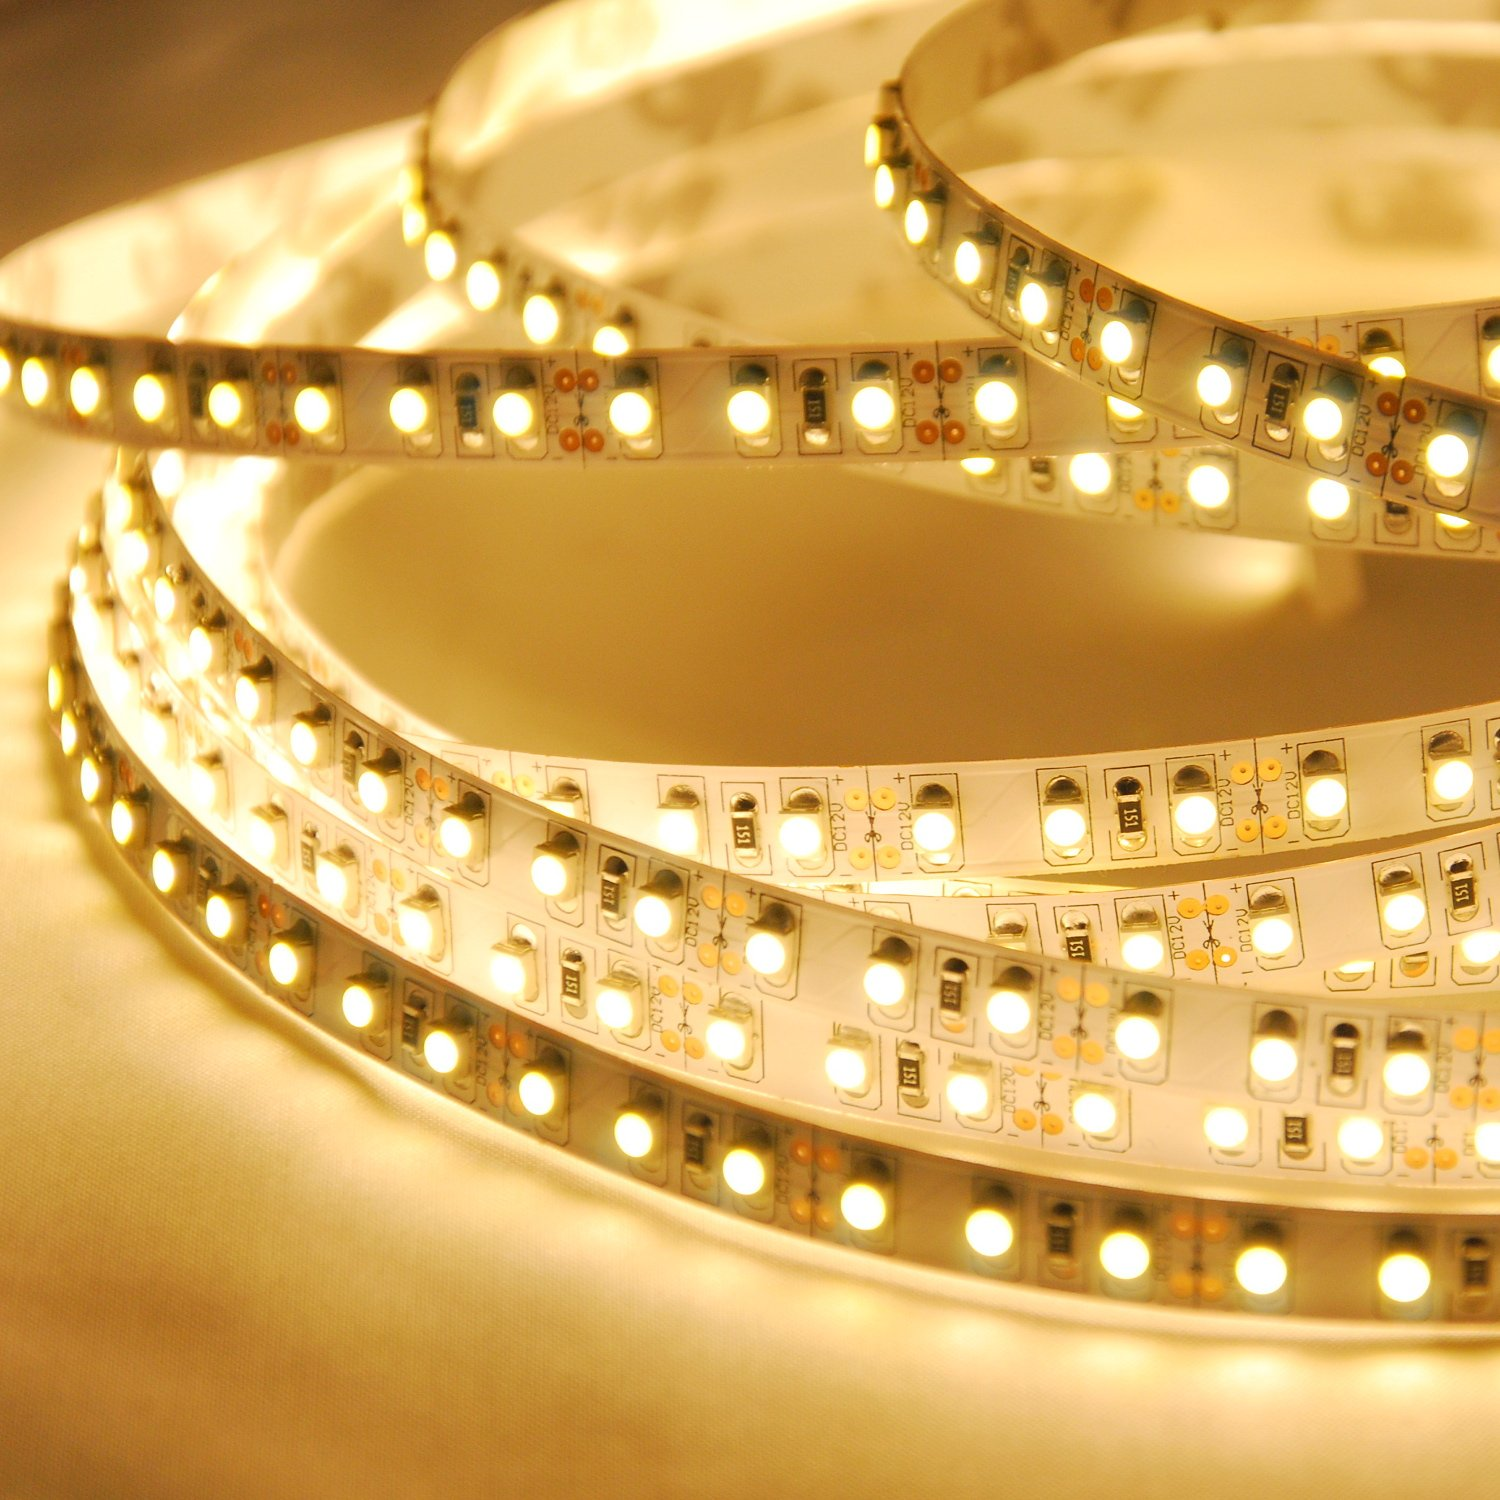 Amazon abi warm white double density flexible led light strip amazon abi warm white double density flexible led light strip with ac adapter 120 led meter led chips 5 meters 164 ft spool 12vdc home aloadofball Image collections